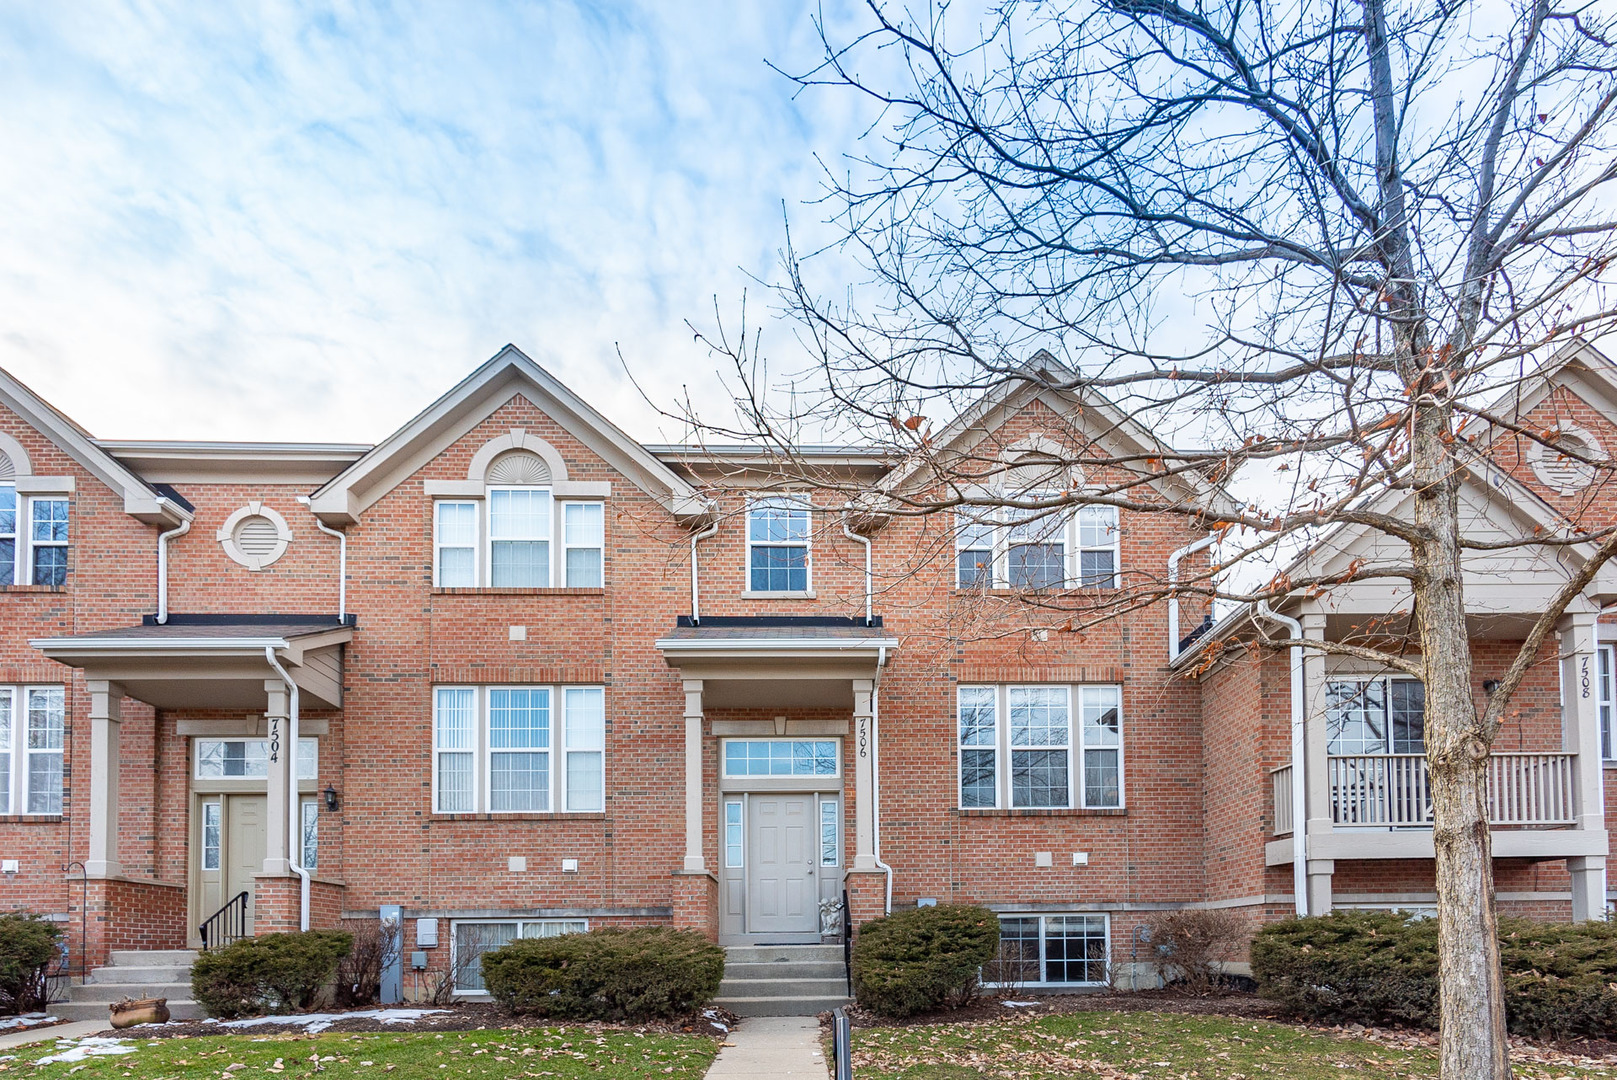 7506 Laramie Avenue, Skokie in Cook County, IL 60077 Home for Sale